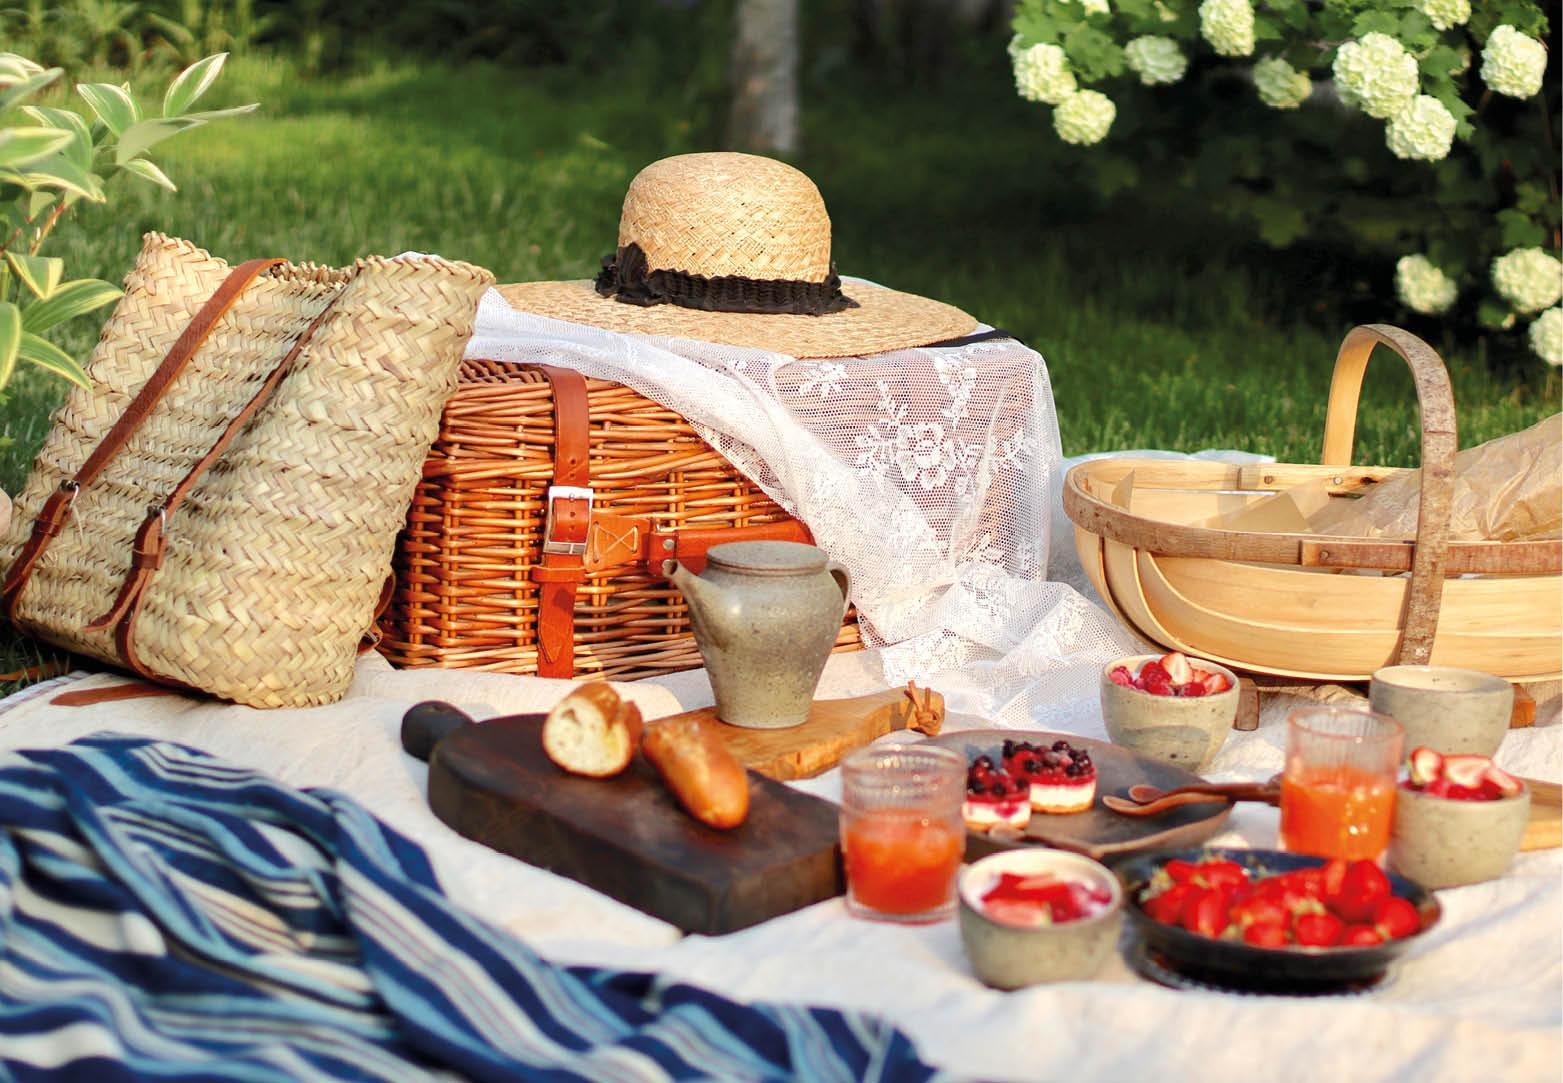 Picknick outfit inspiratie